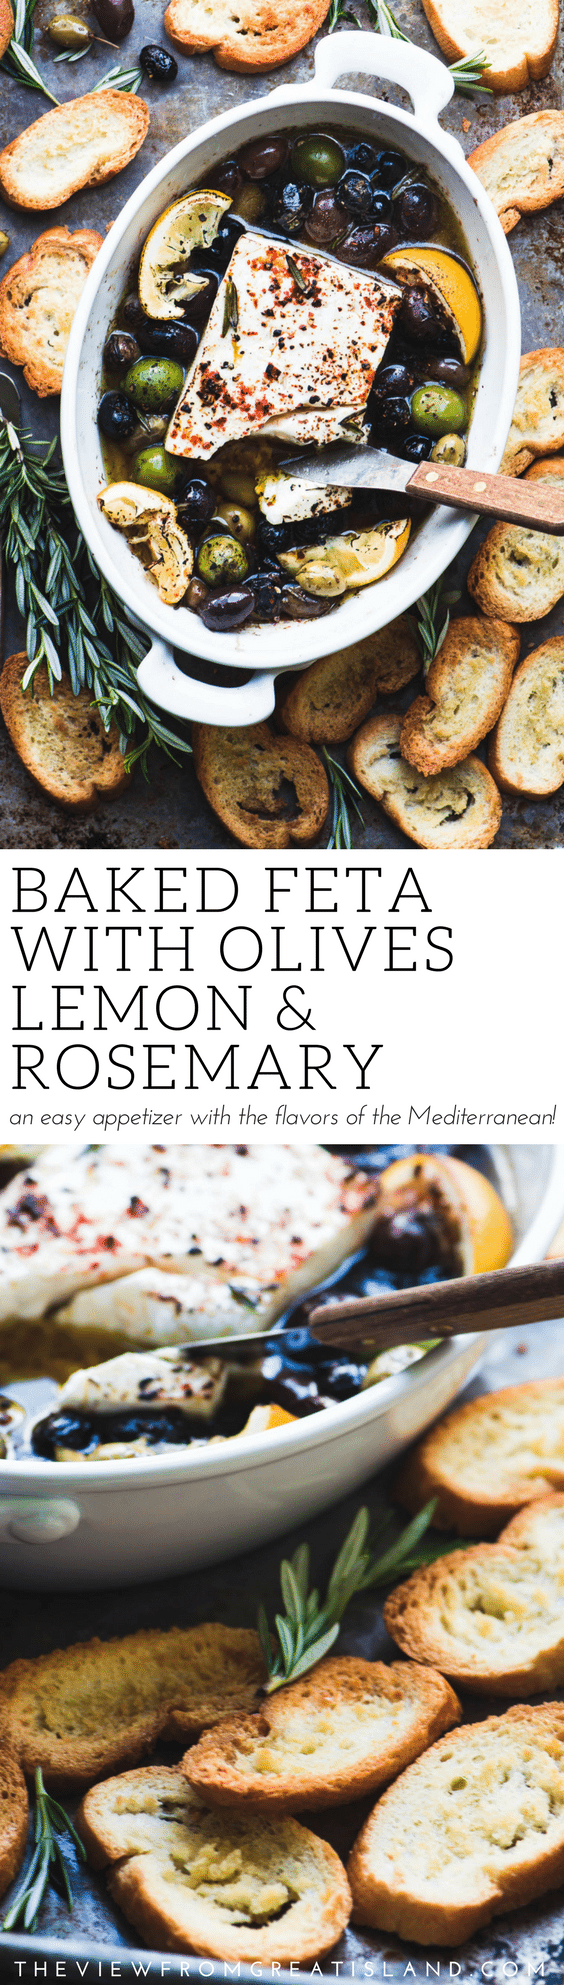 Baked Feta Cheese with Olives and Lemon ~ an easy baked cheese appetizer that shows off the spectacular sun drenched flavors of the Mediterranean. Serve it with some toasted bread and watch it disappear! #cheese #bakedcheese #feta #sheepsmilkcheese #hotappetizer #appetizer #easyappetizer #olives #roastedolives #healthy #mediterranean #rosemary #Greek #mezze #tapas #partyappetizer